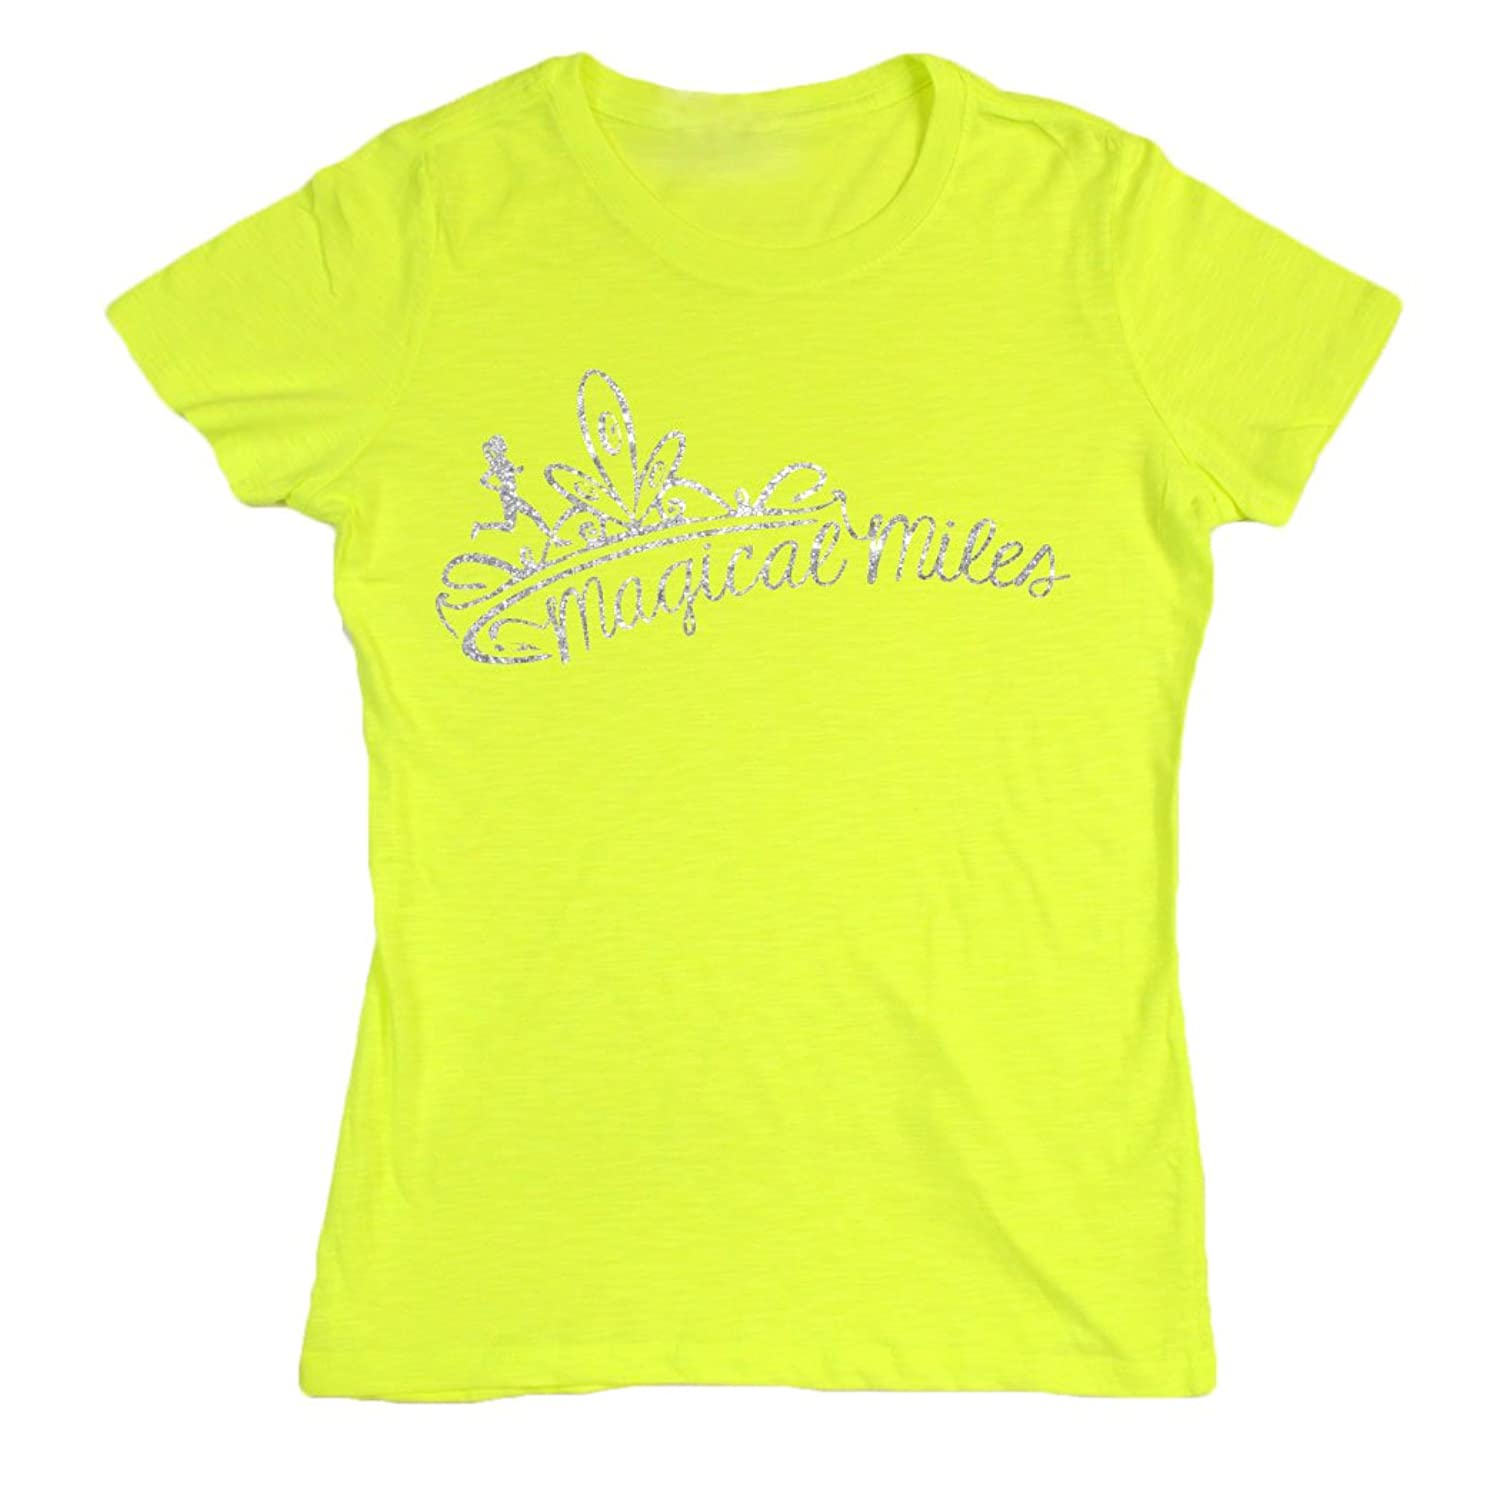 Women's Neon Series Tee Magical Miles Glitter